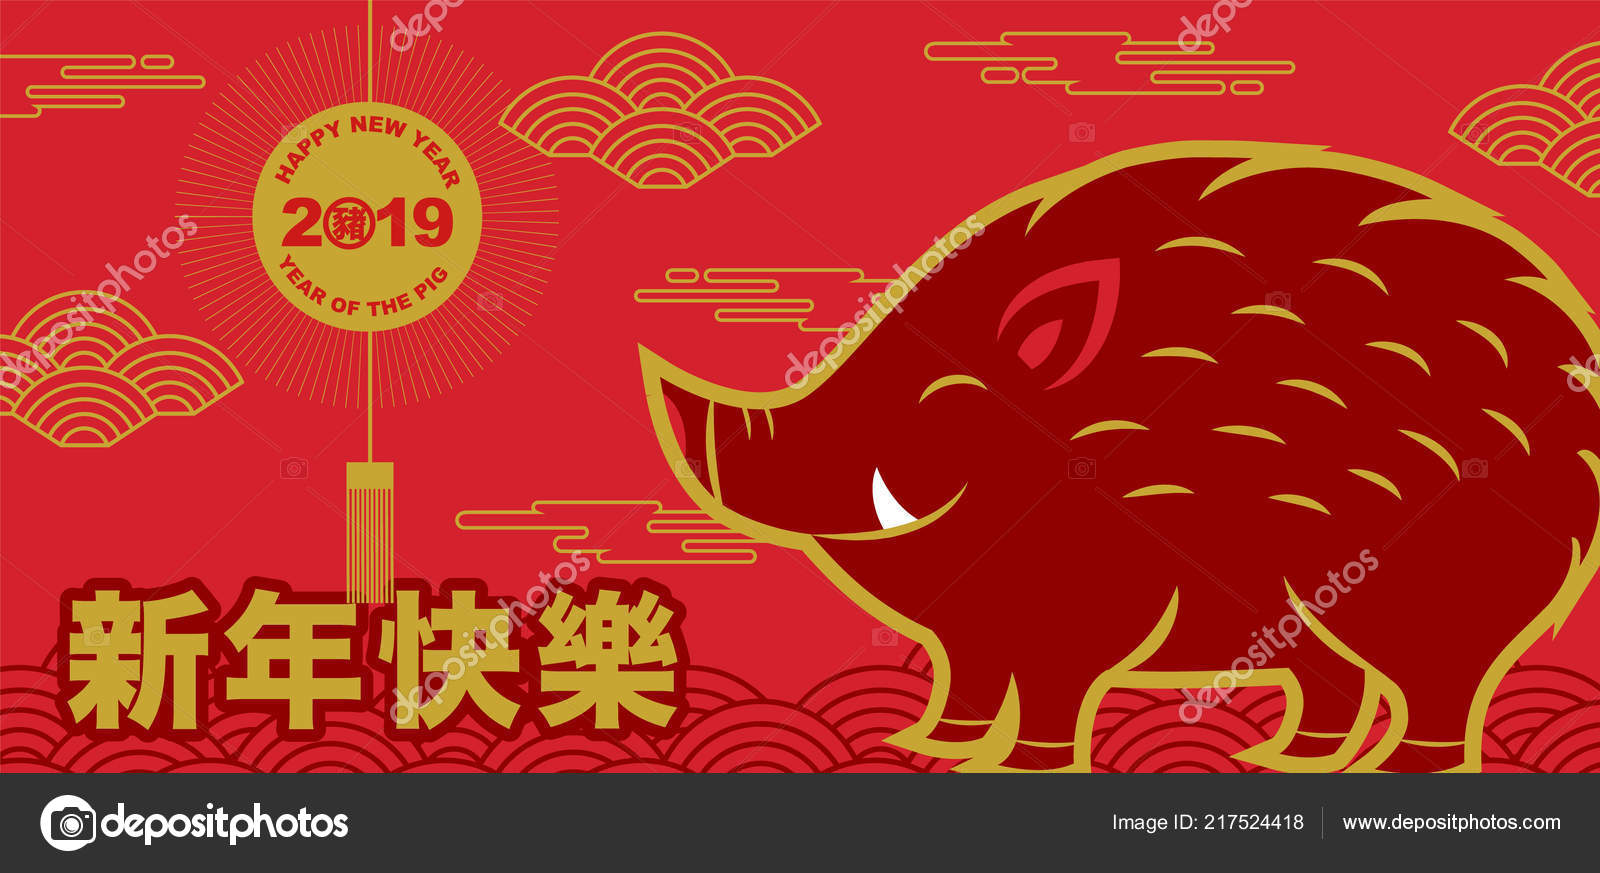 Happy New Year 2019 Chinese New Year Greetings Year Pig Stock